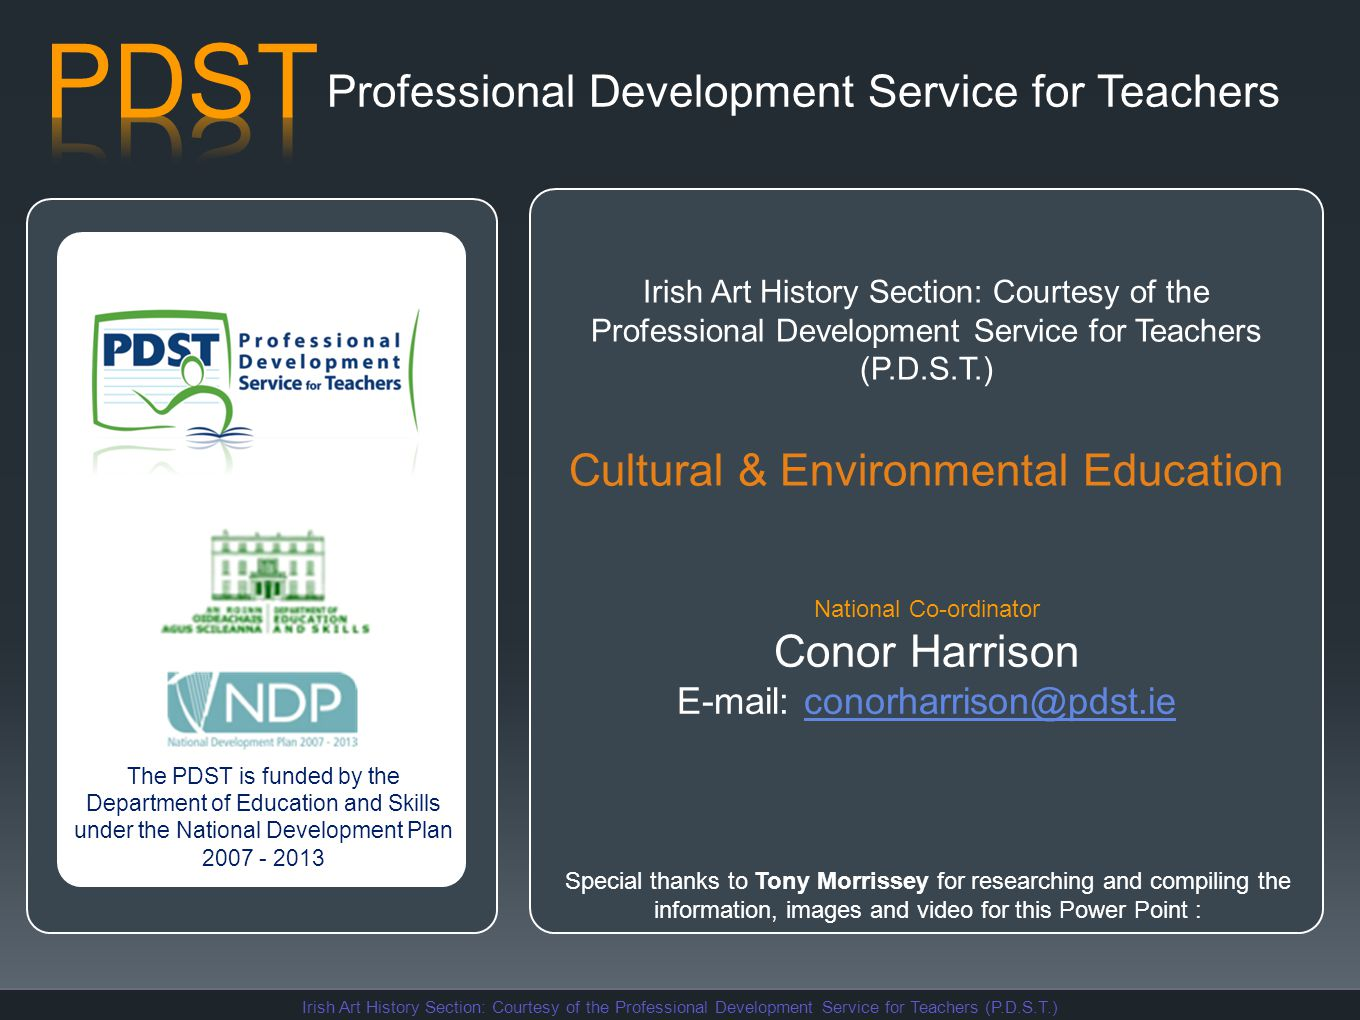 Professional Development Service for Teachers The PDST is funded by the Department of Education and Skills under the National Development Plan 2007 - 2013 Irish Art History Section: Courtesy of the Professional Development Service for Teachers (P.D.S.T.) Cultural & Environmental Education National Co-ordinator Conor Harrison E-mail: conorharrison@pdst.ieconorharrison@pdst.ie Special thanks to Tony Morrissey for researching and compiling the information, images and video for this Power Point :